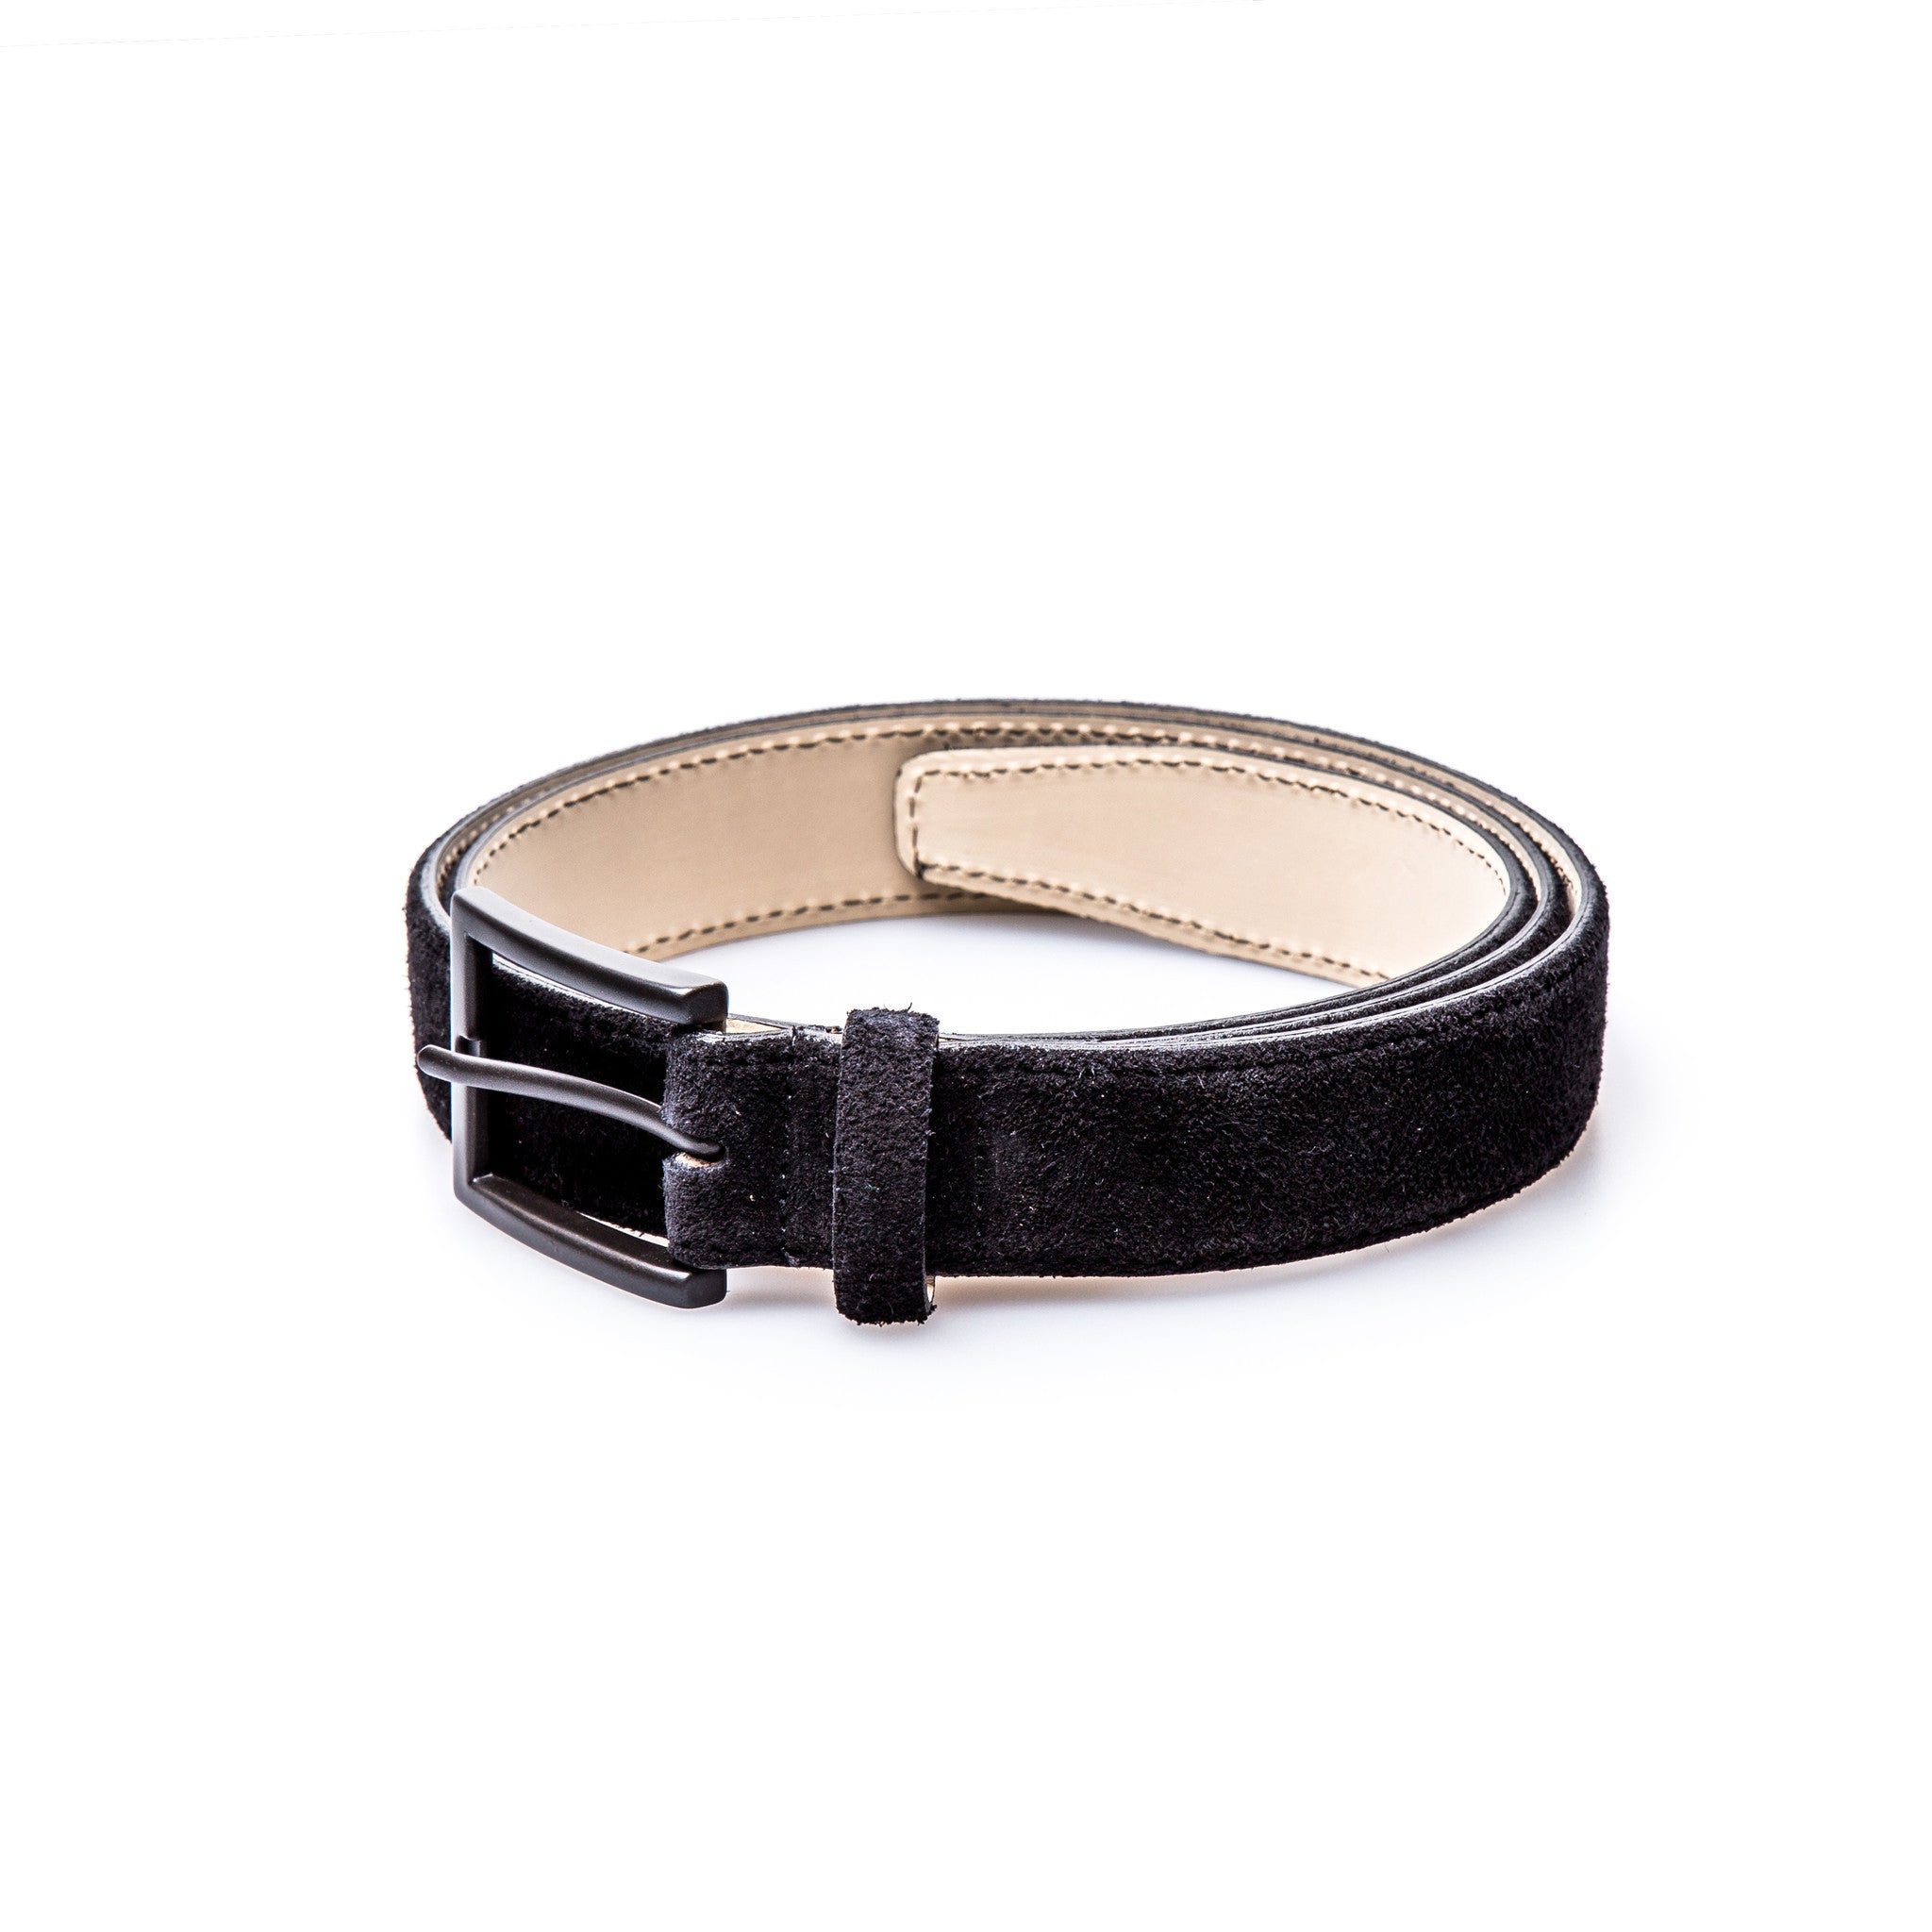 Represent - Duty Belt Black - COMMON  - 1